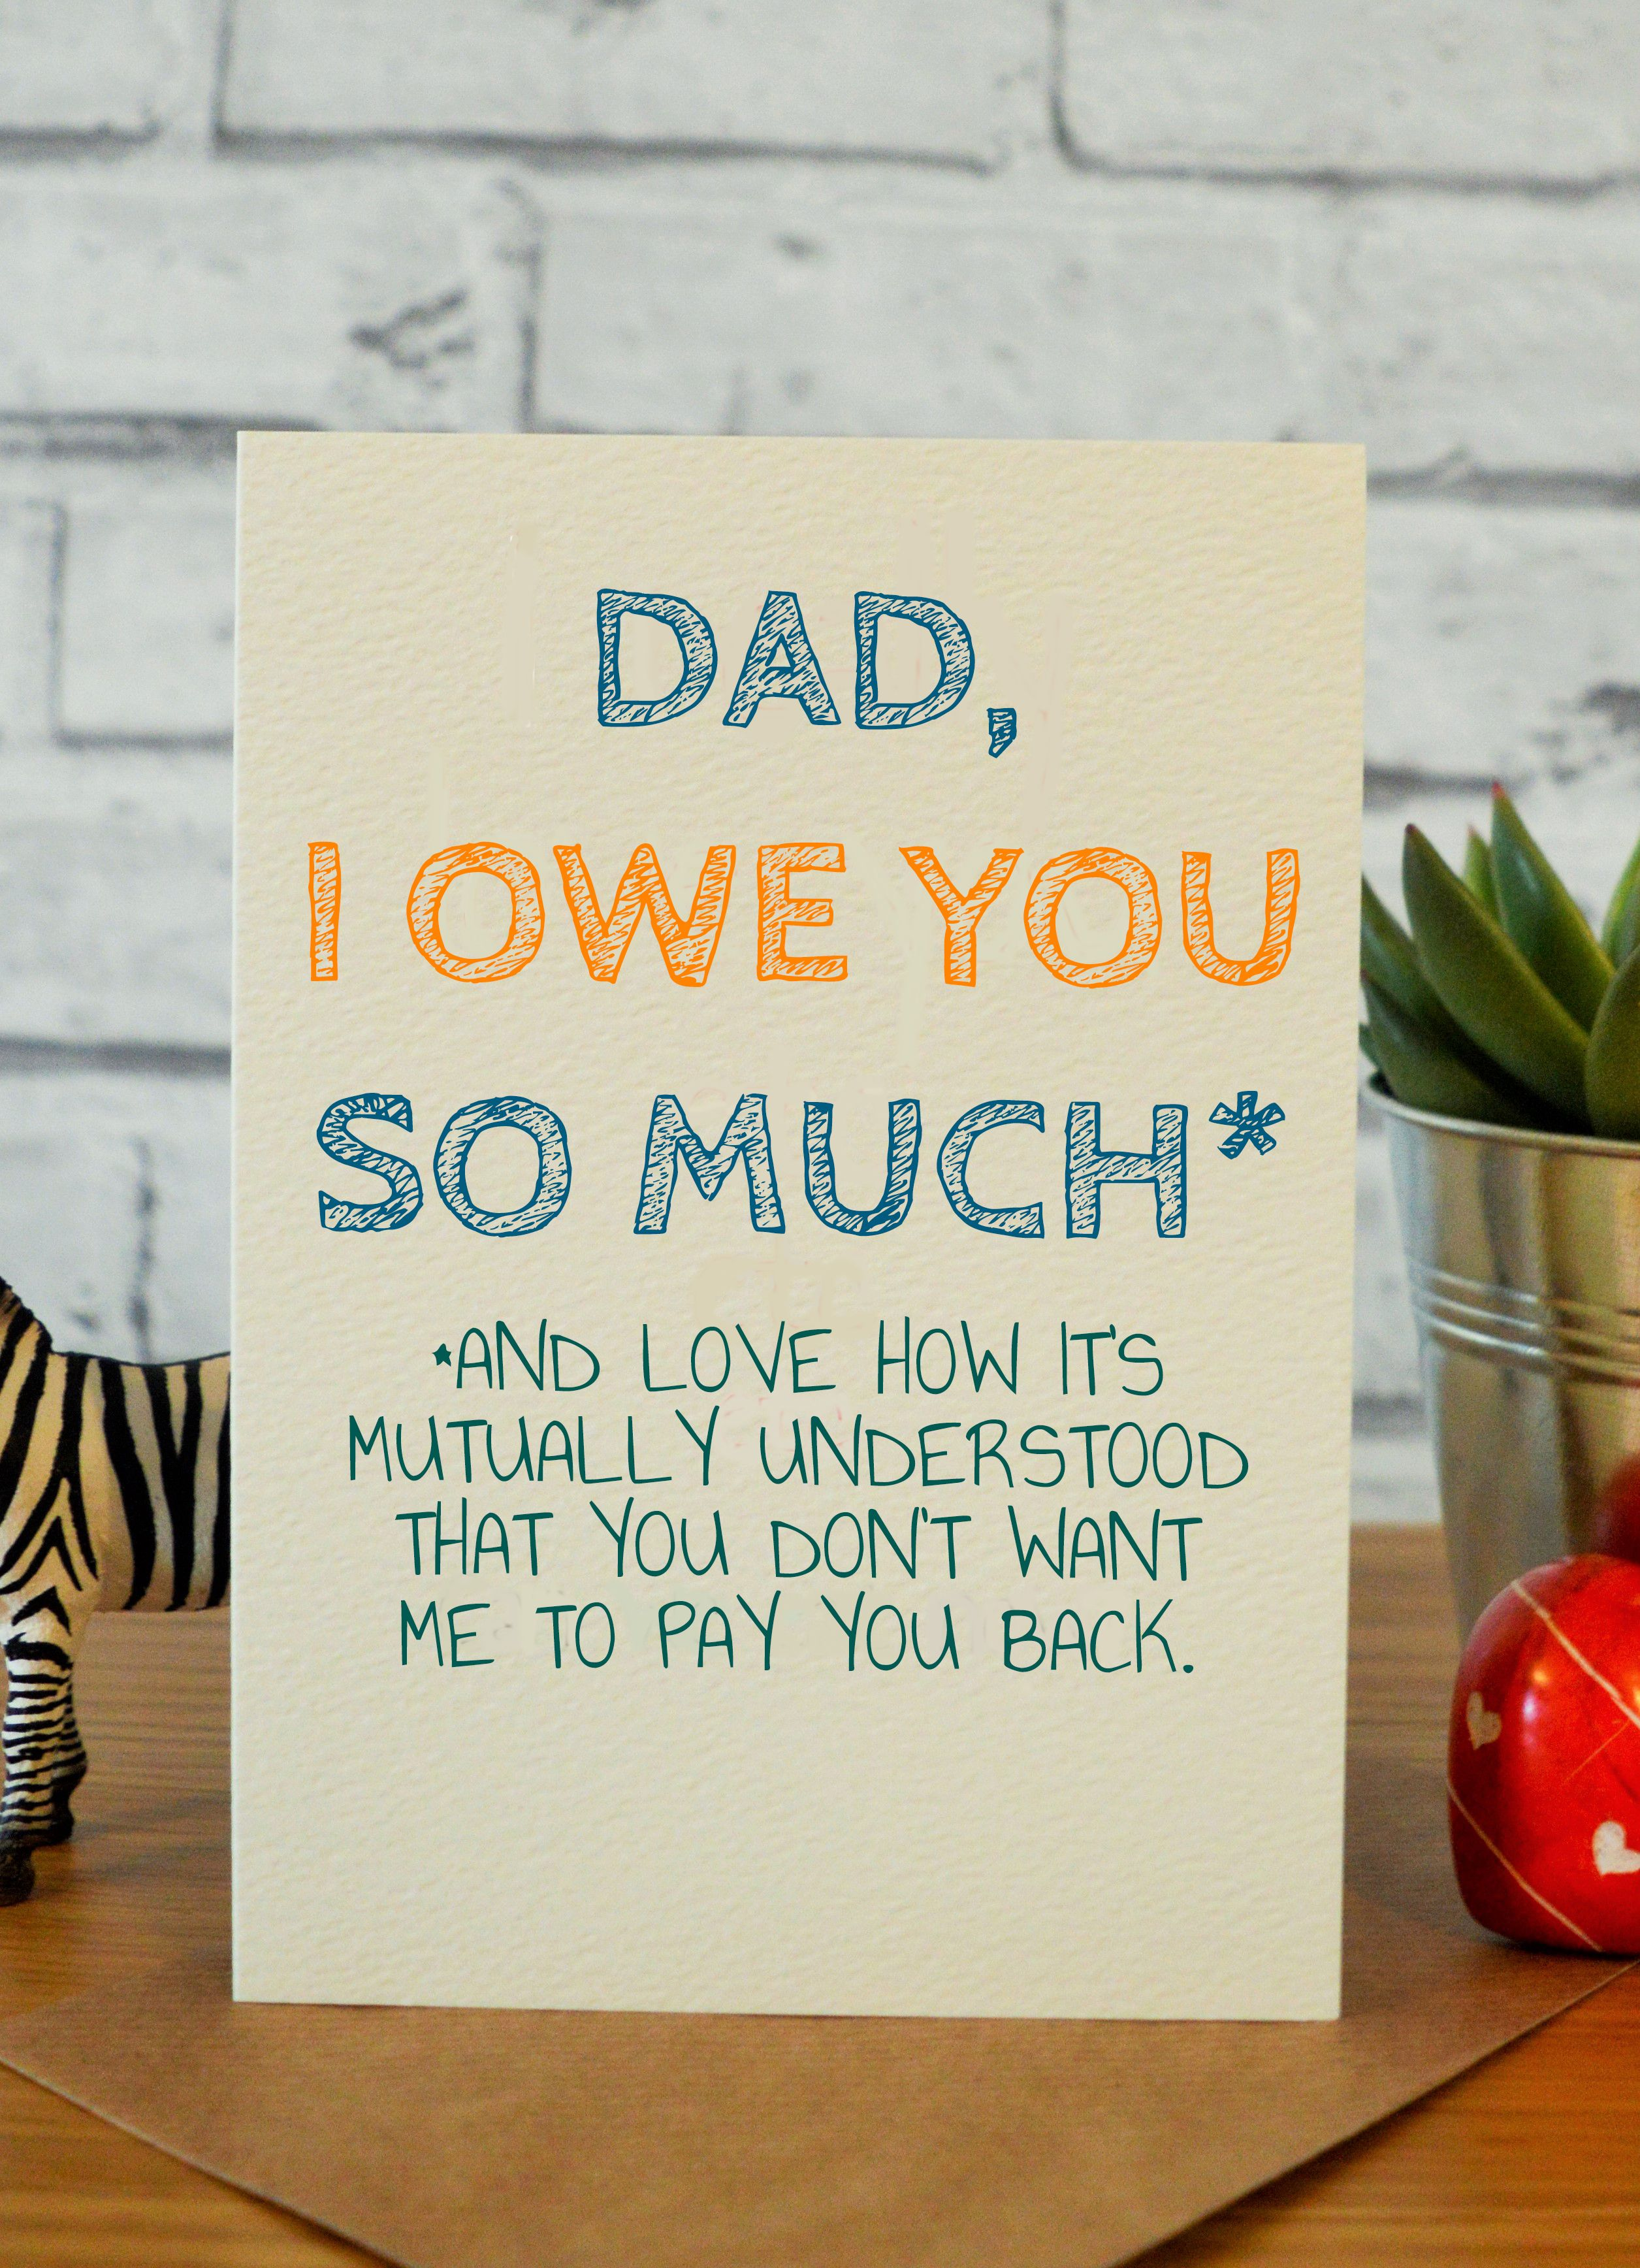 Funny Dad Birthday Card Gifts Hilarious Etsy Handmade Gift Ideas Fathers Day Cards